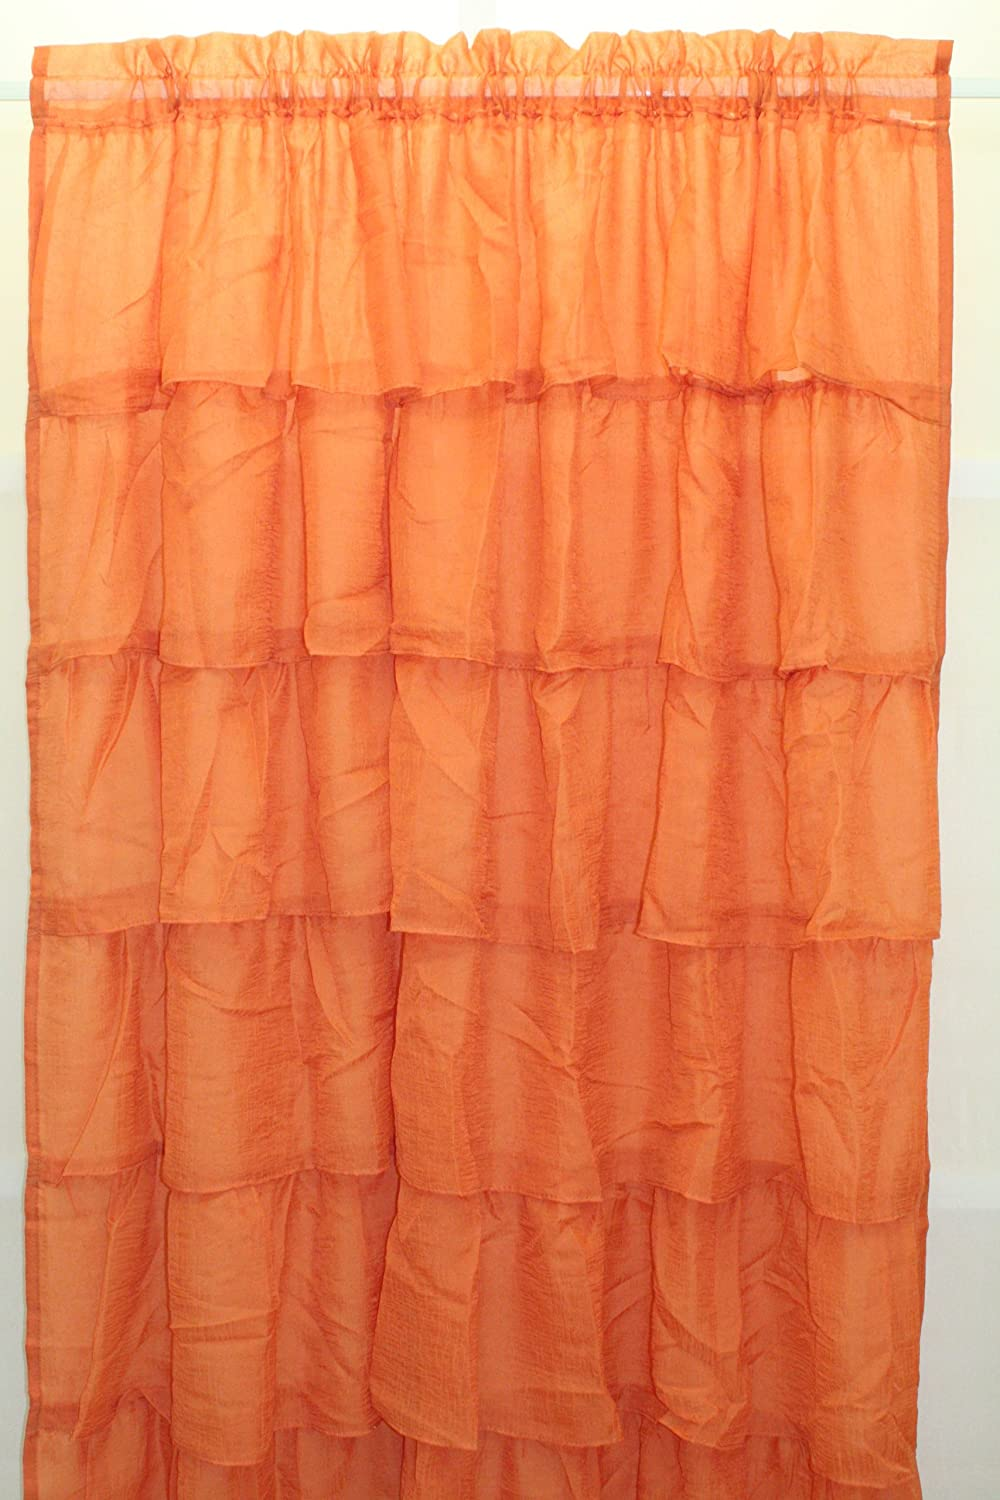 product garden panel lottie baby curtain floral curtains pair treatments window accessories trim archives da web category ruffle panels